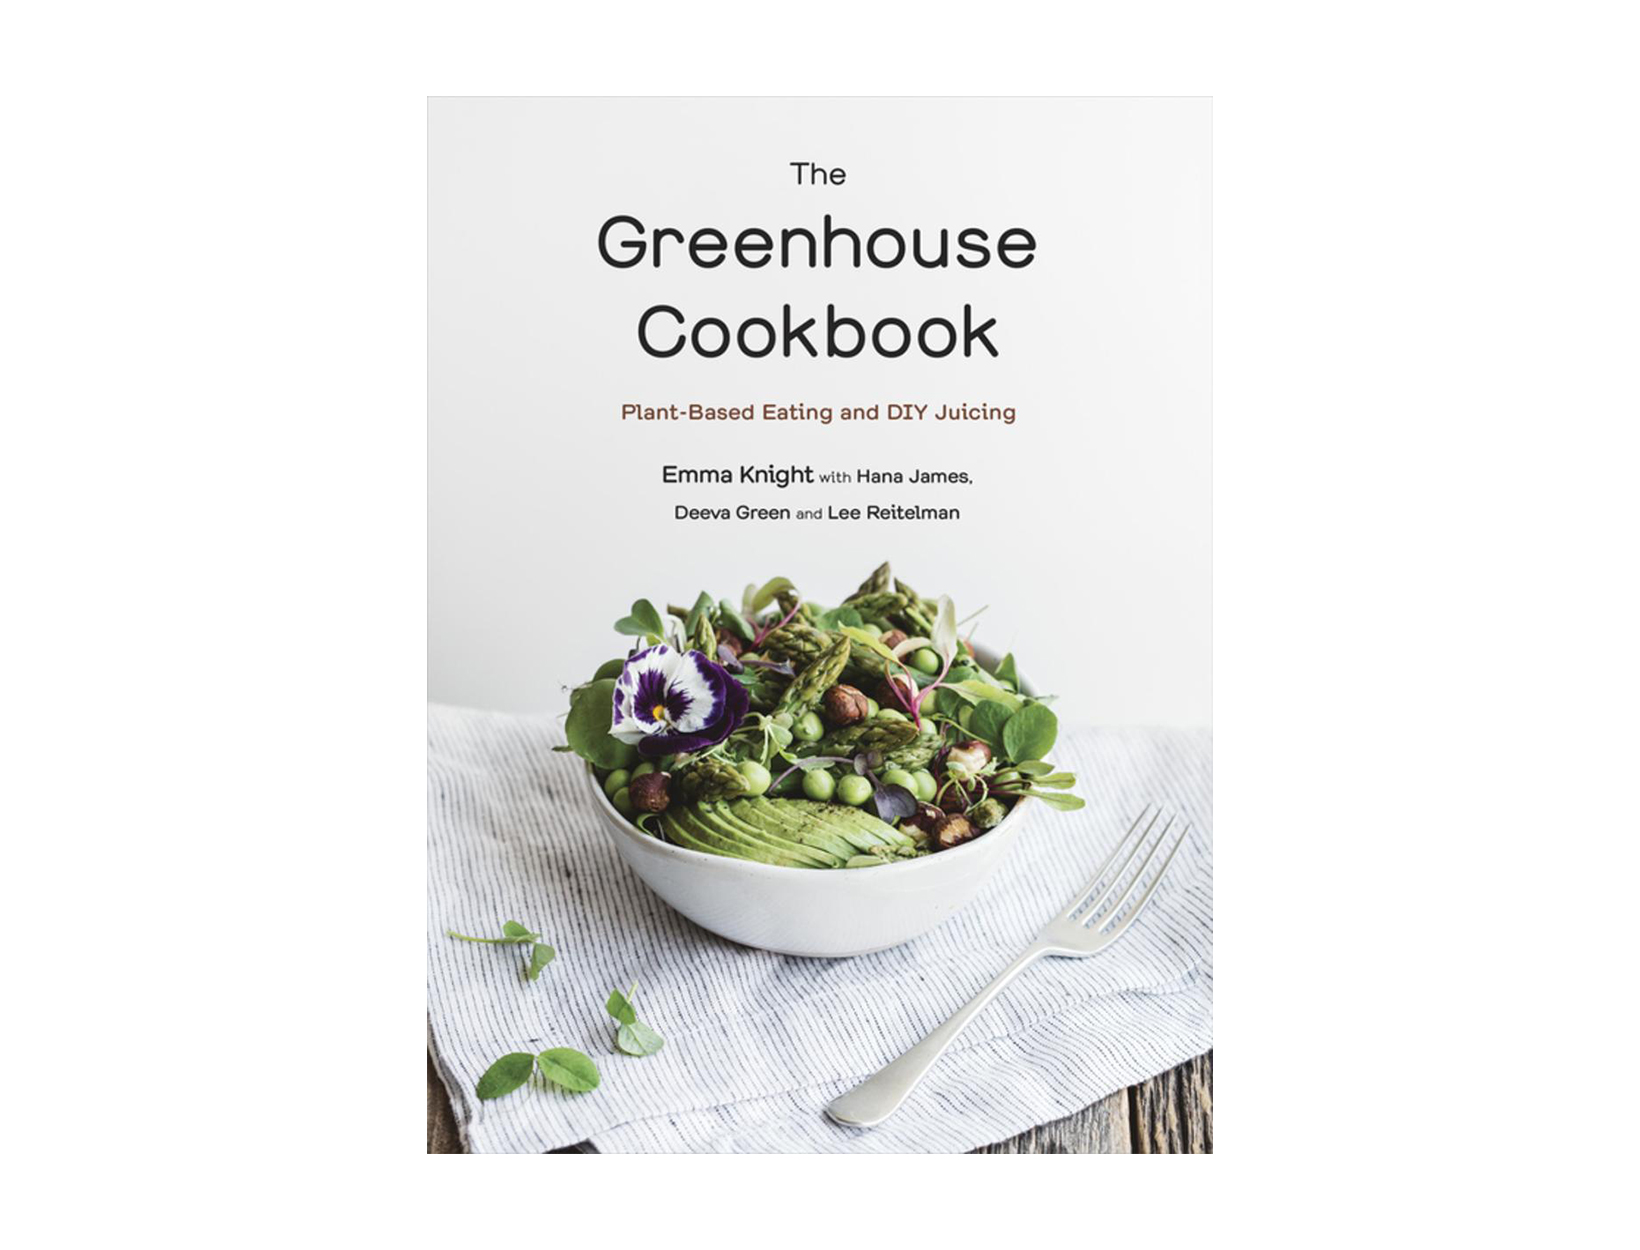 The Greenhouse Cookbook: Plant-Based Eating and DIY Juicing by Emma Knight